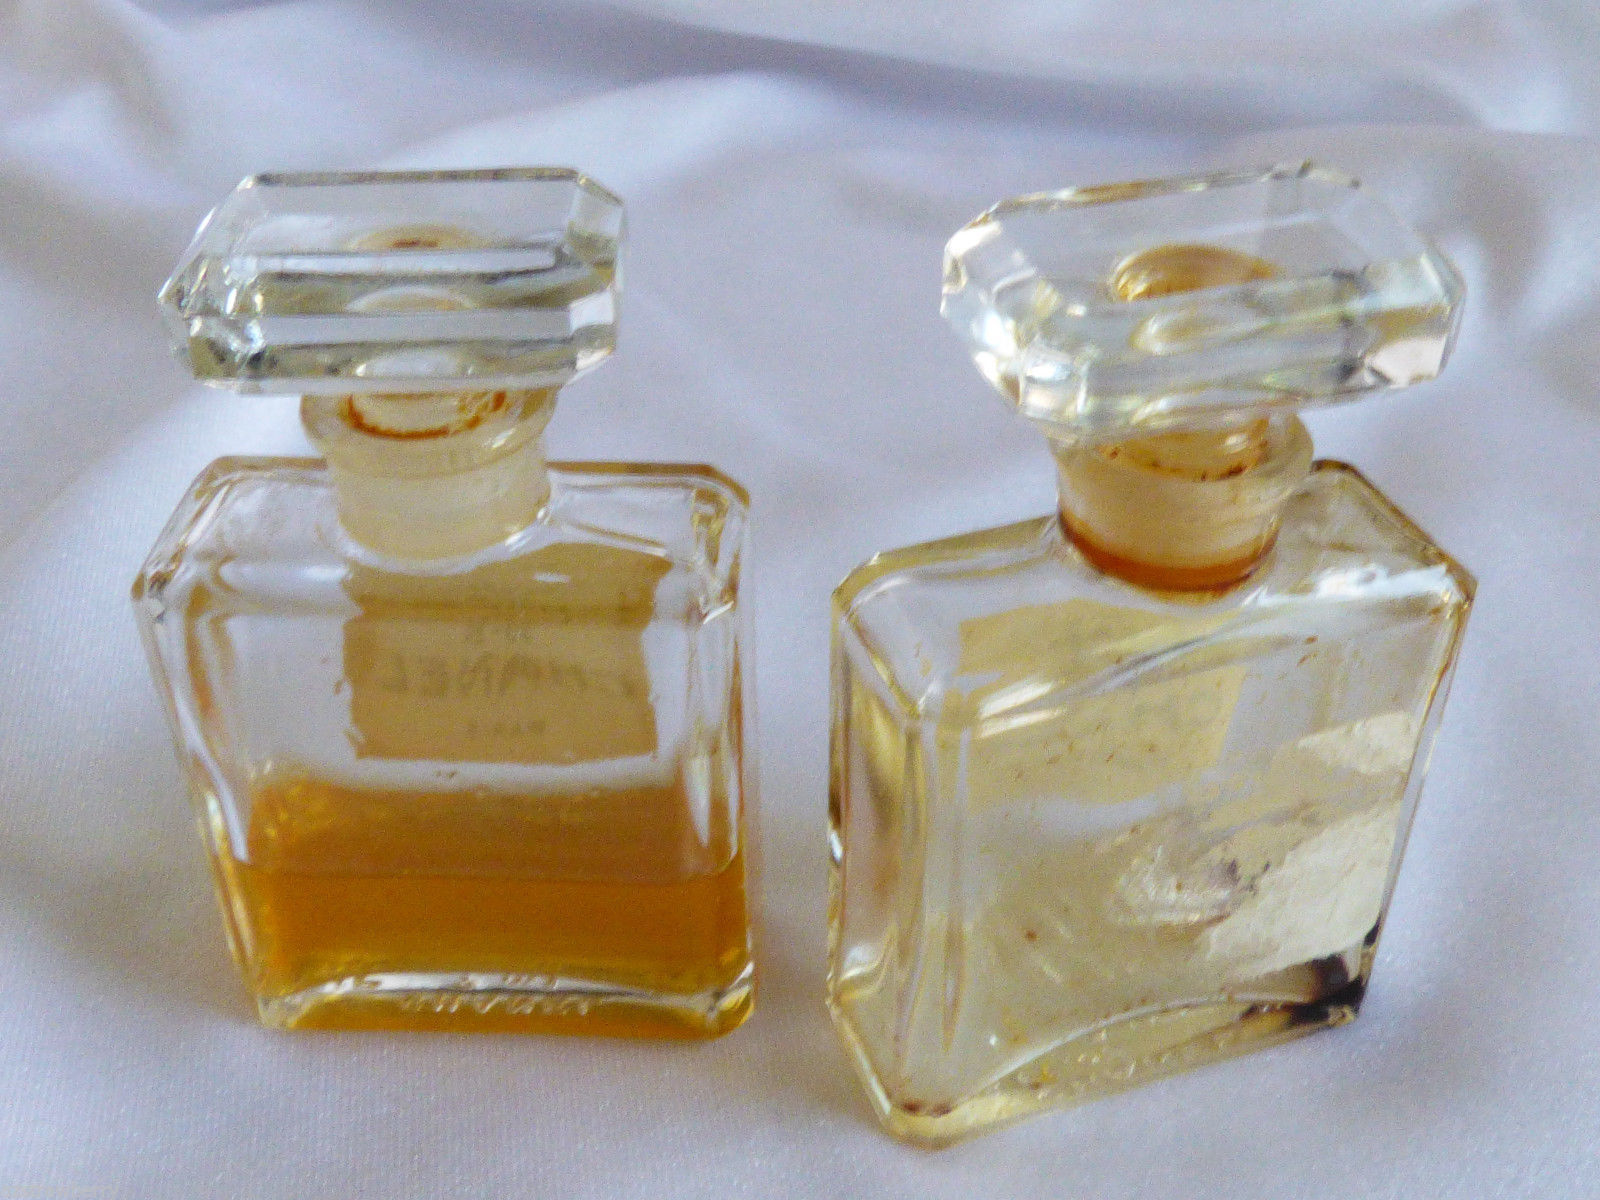 VTG set of 2 Chanel No 5 Perfume 7.5 ml 1/4 oz Rare with perfume image 5